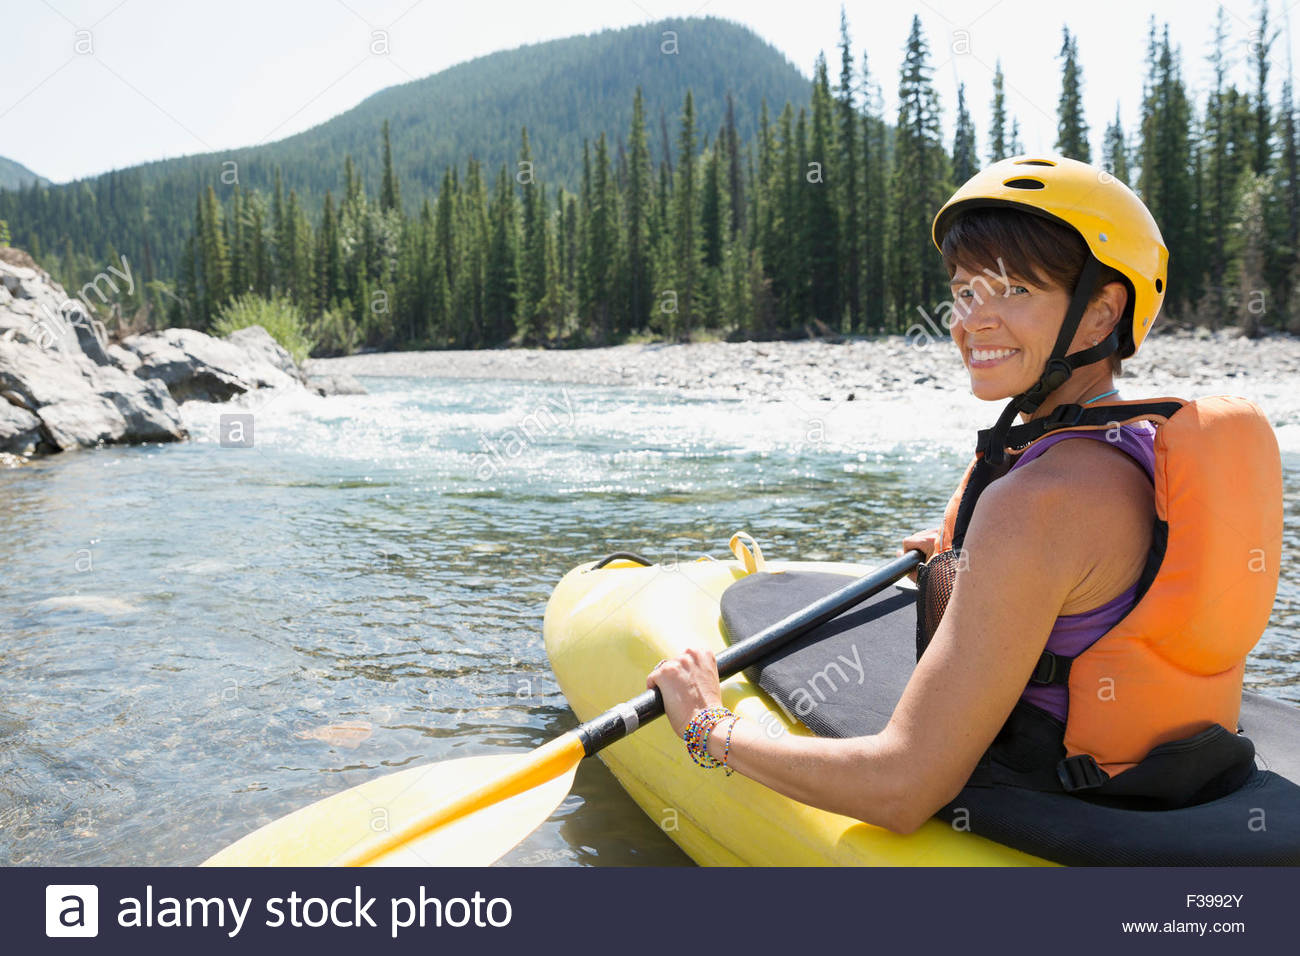 Portrait smiling woman kayaking in river Stock Photo